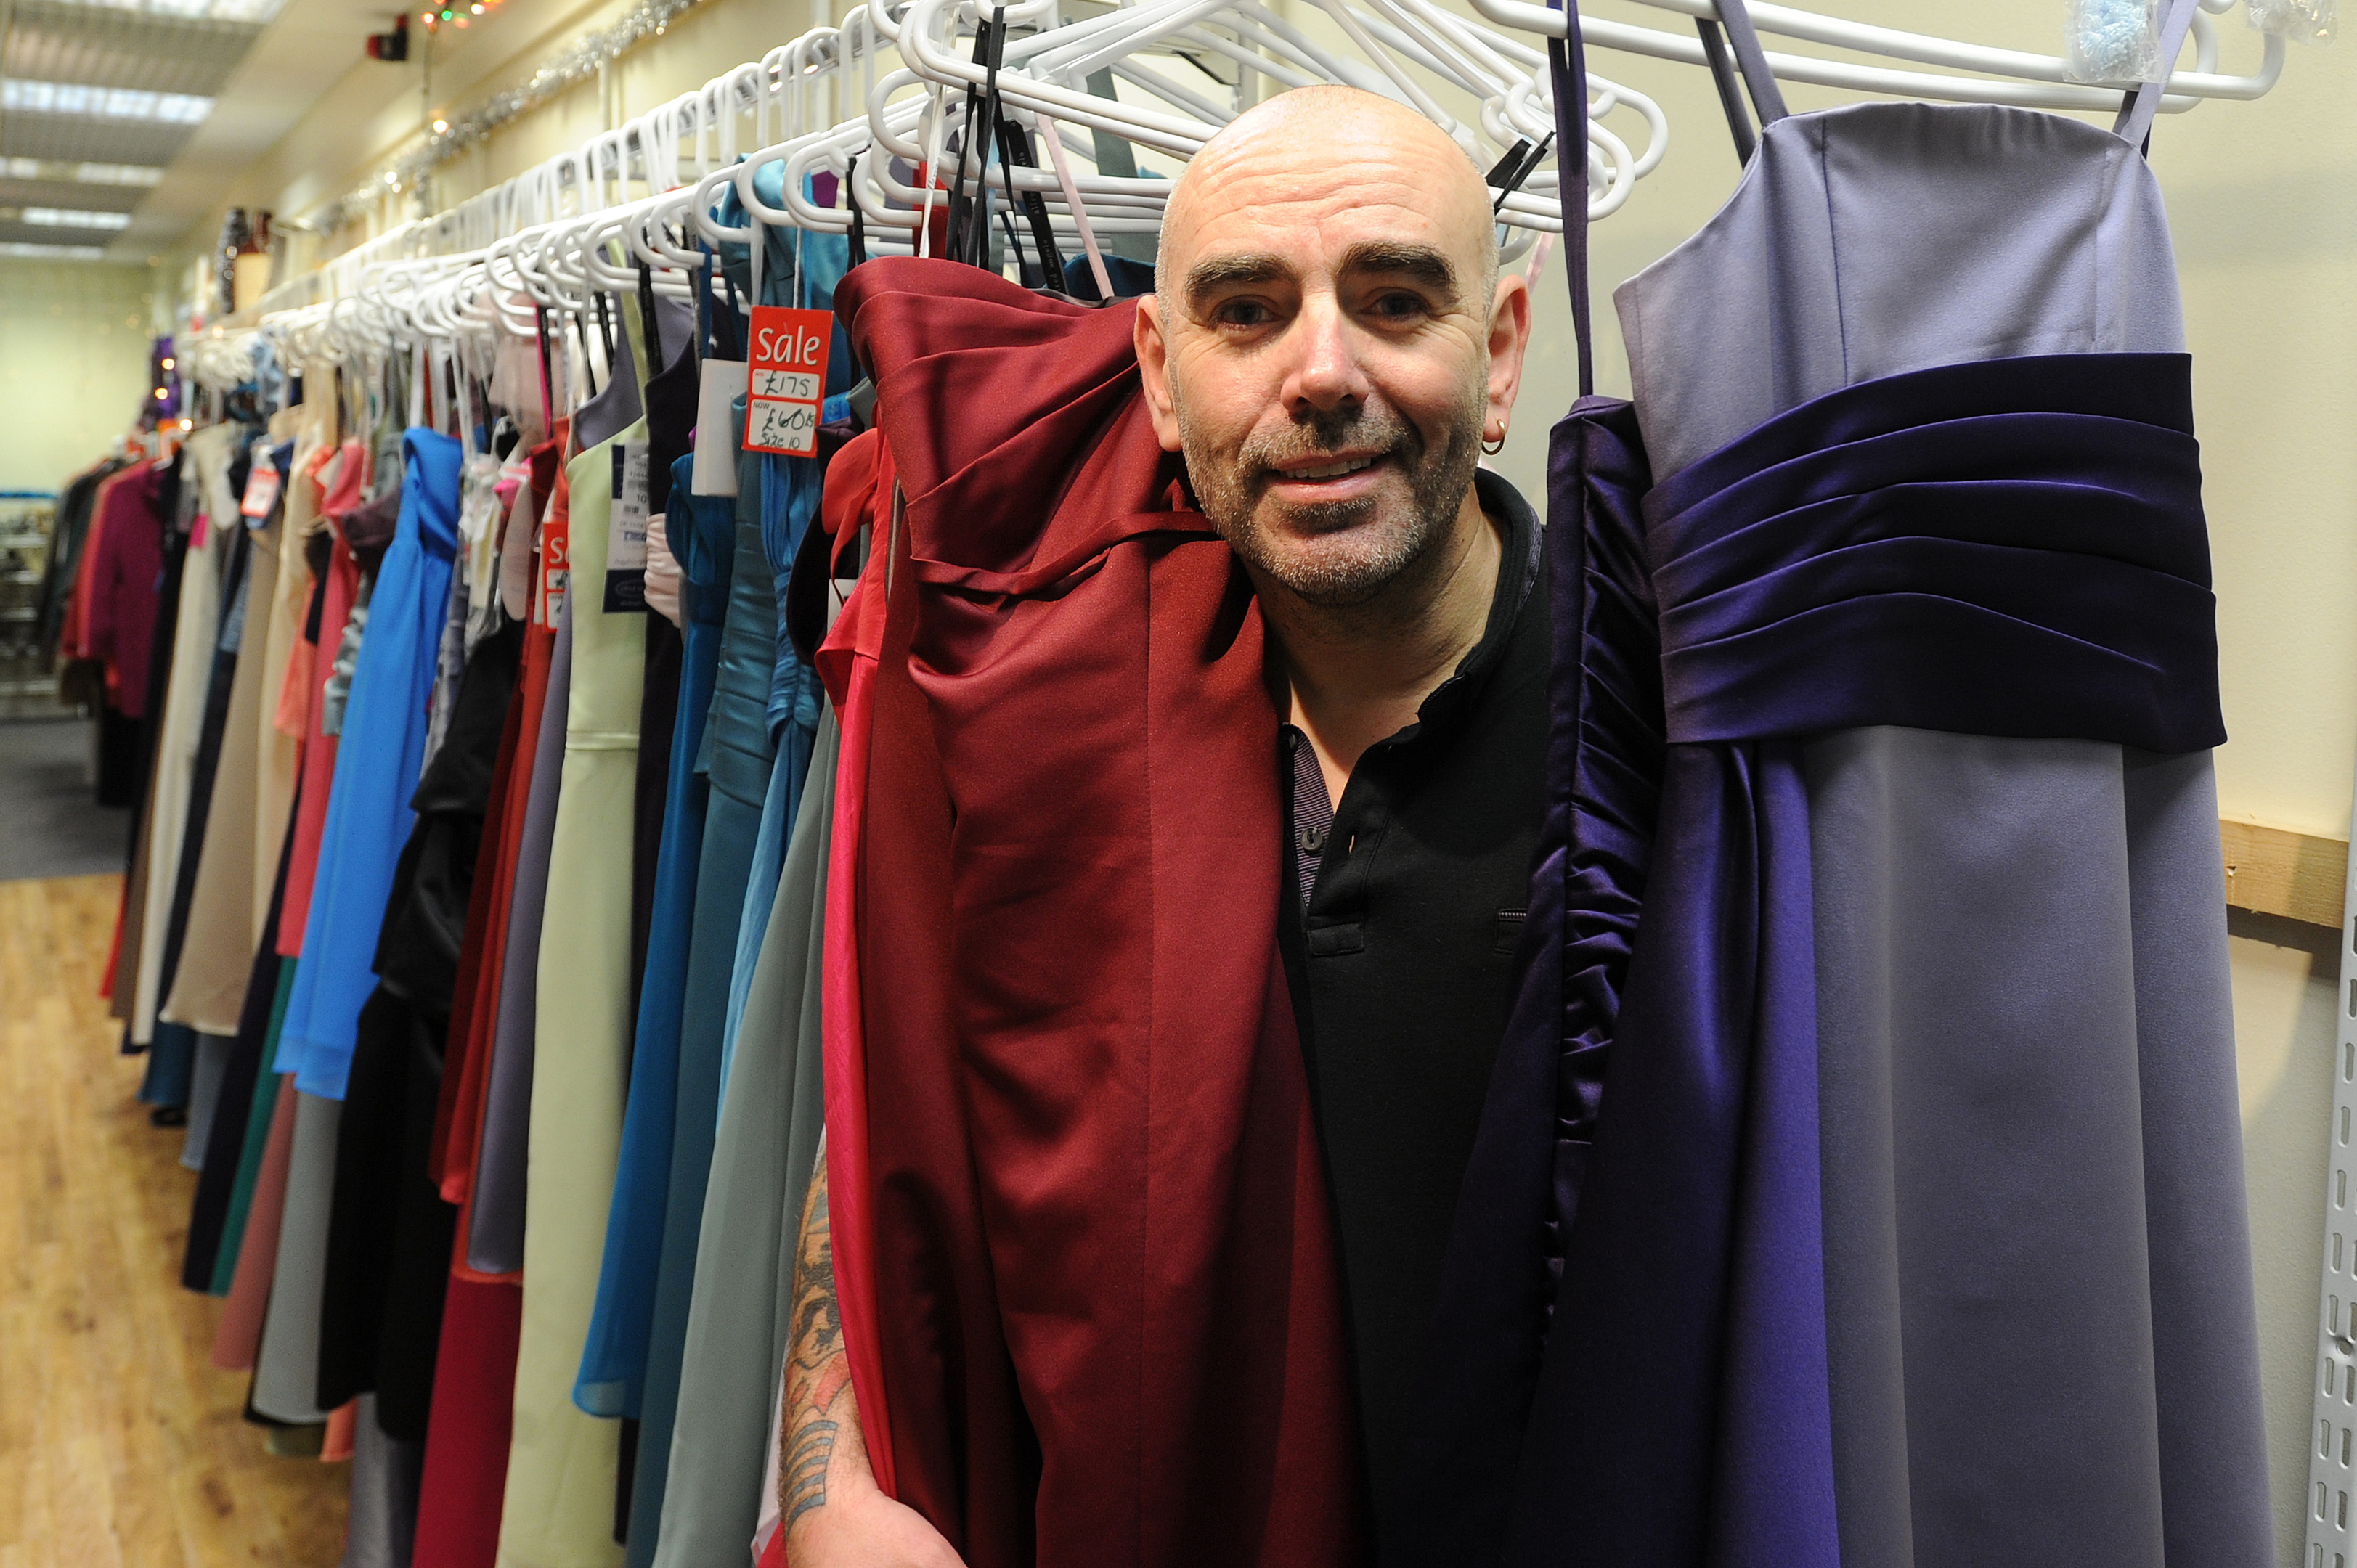 Mr Smith has welcomed the donation of almost 200 new bridesmaid dresses